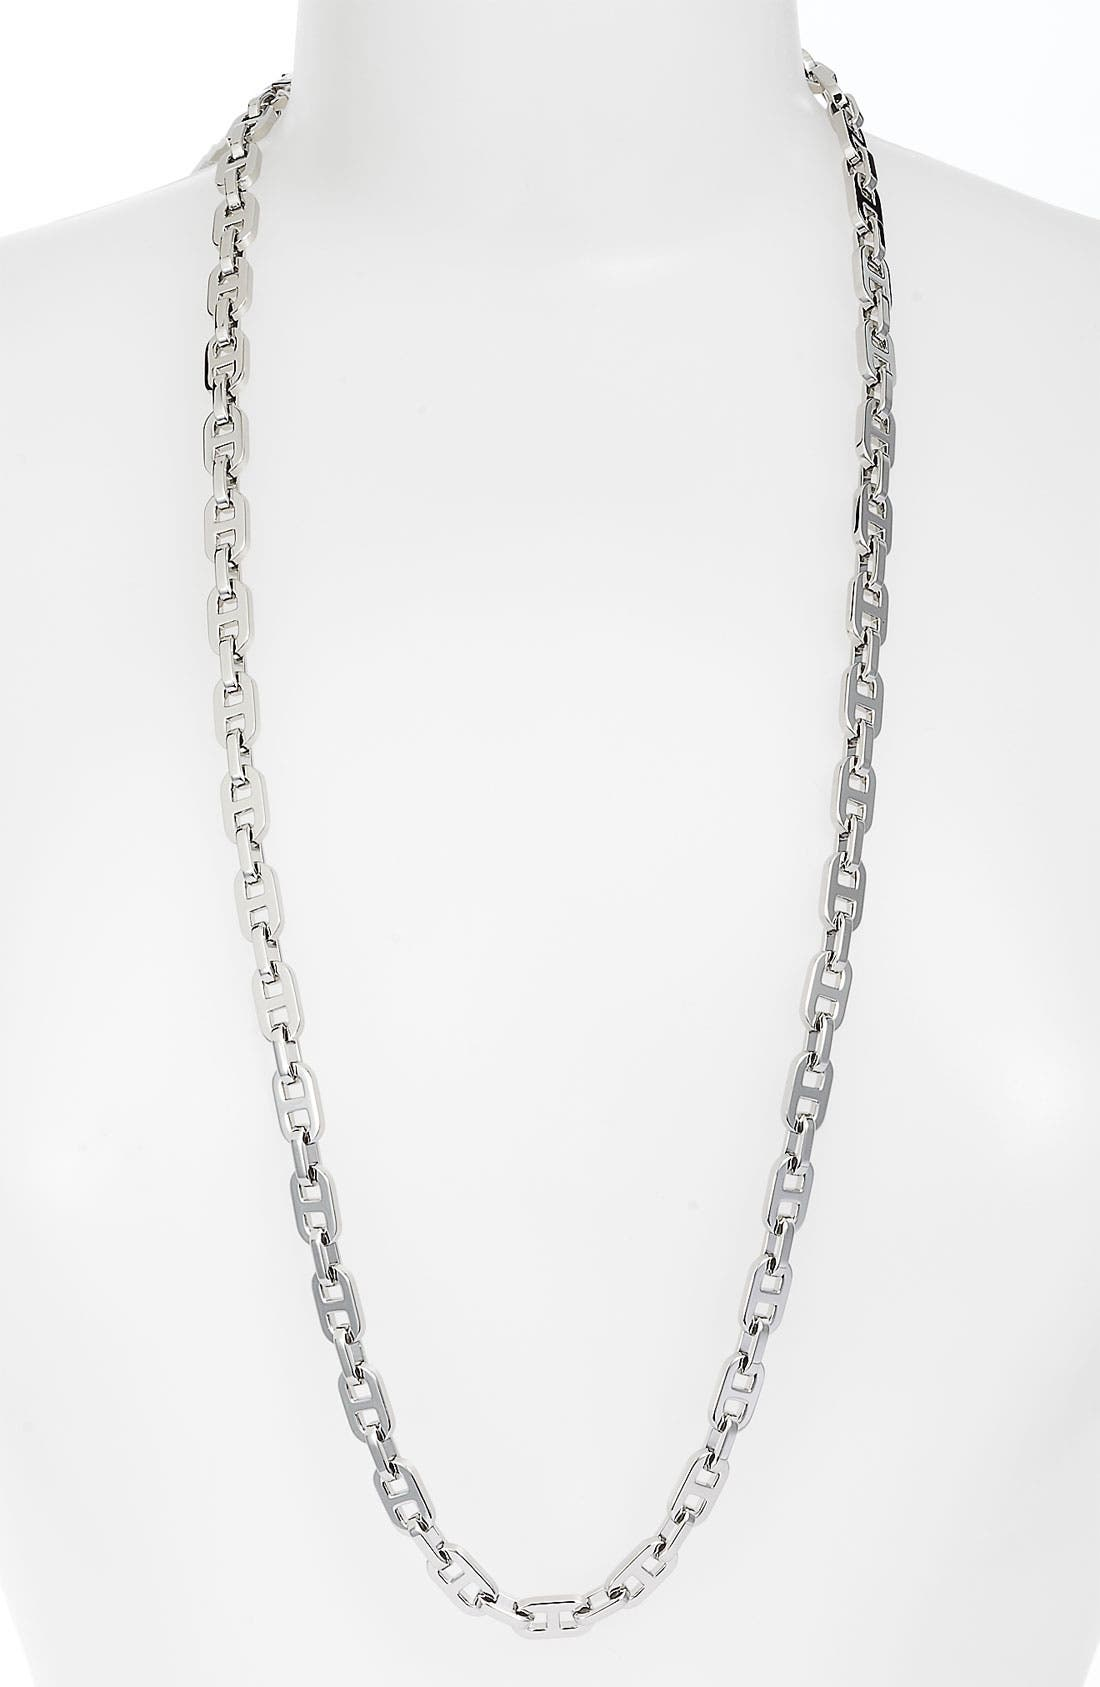 Main Image - Michael Kors 'Equestrian Luxury' Long Link Necklace